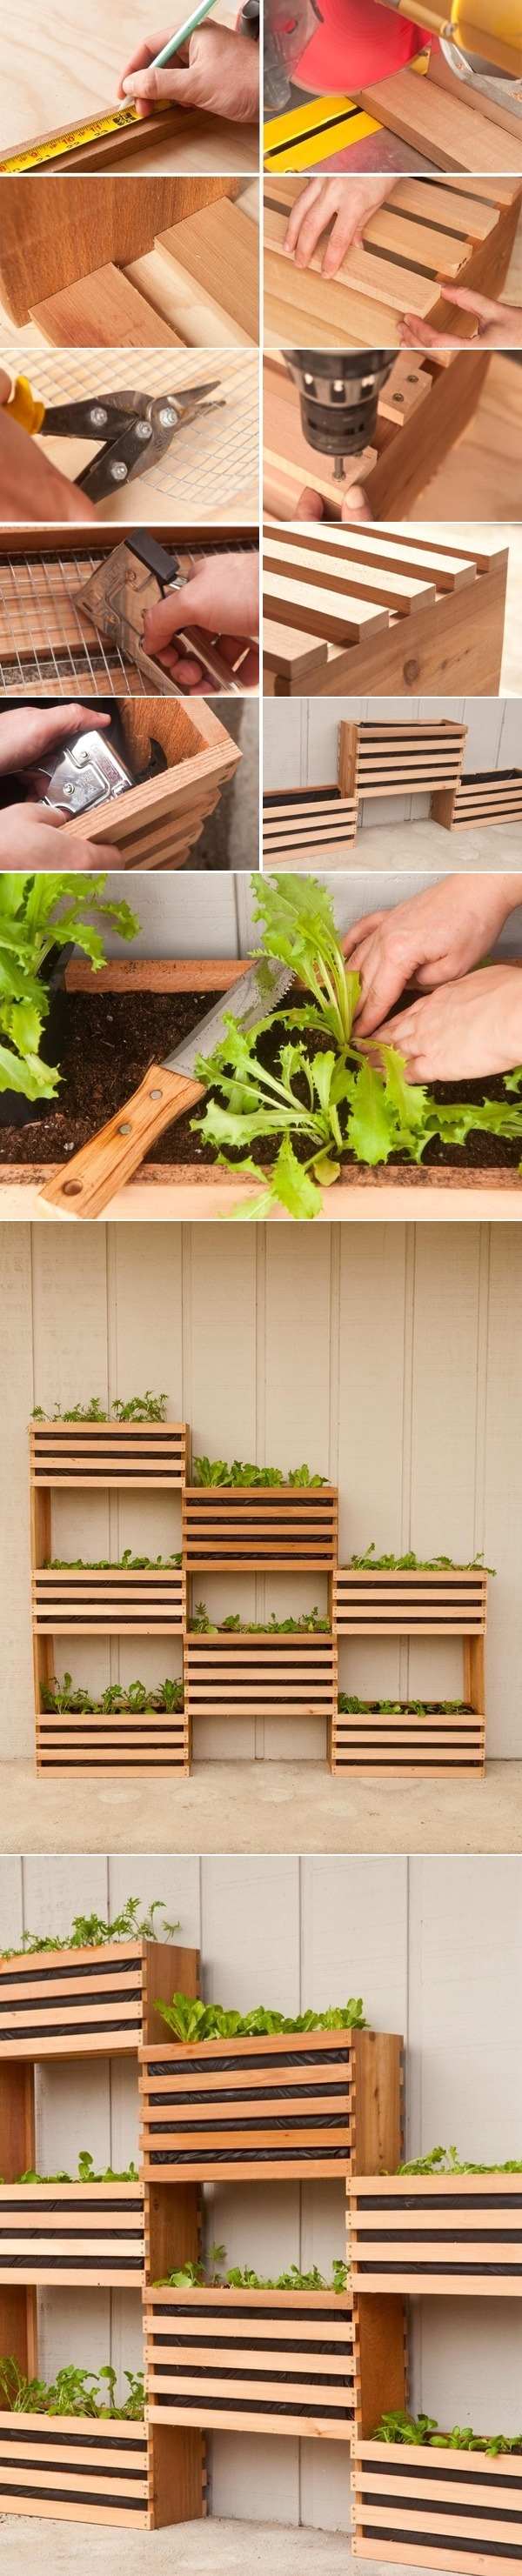 Modern, Space-Saving Vertical Vegetable Garden